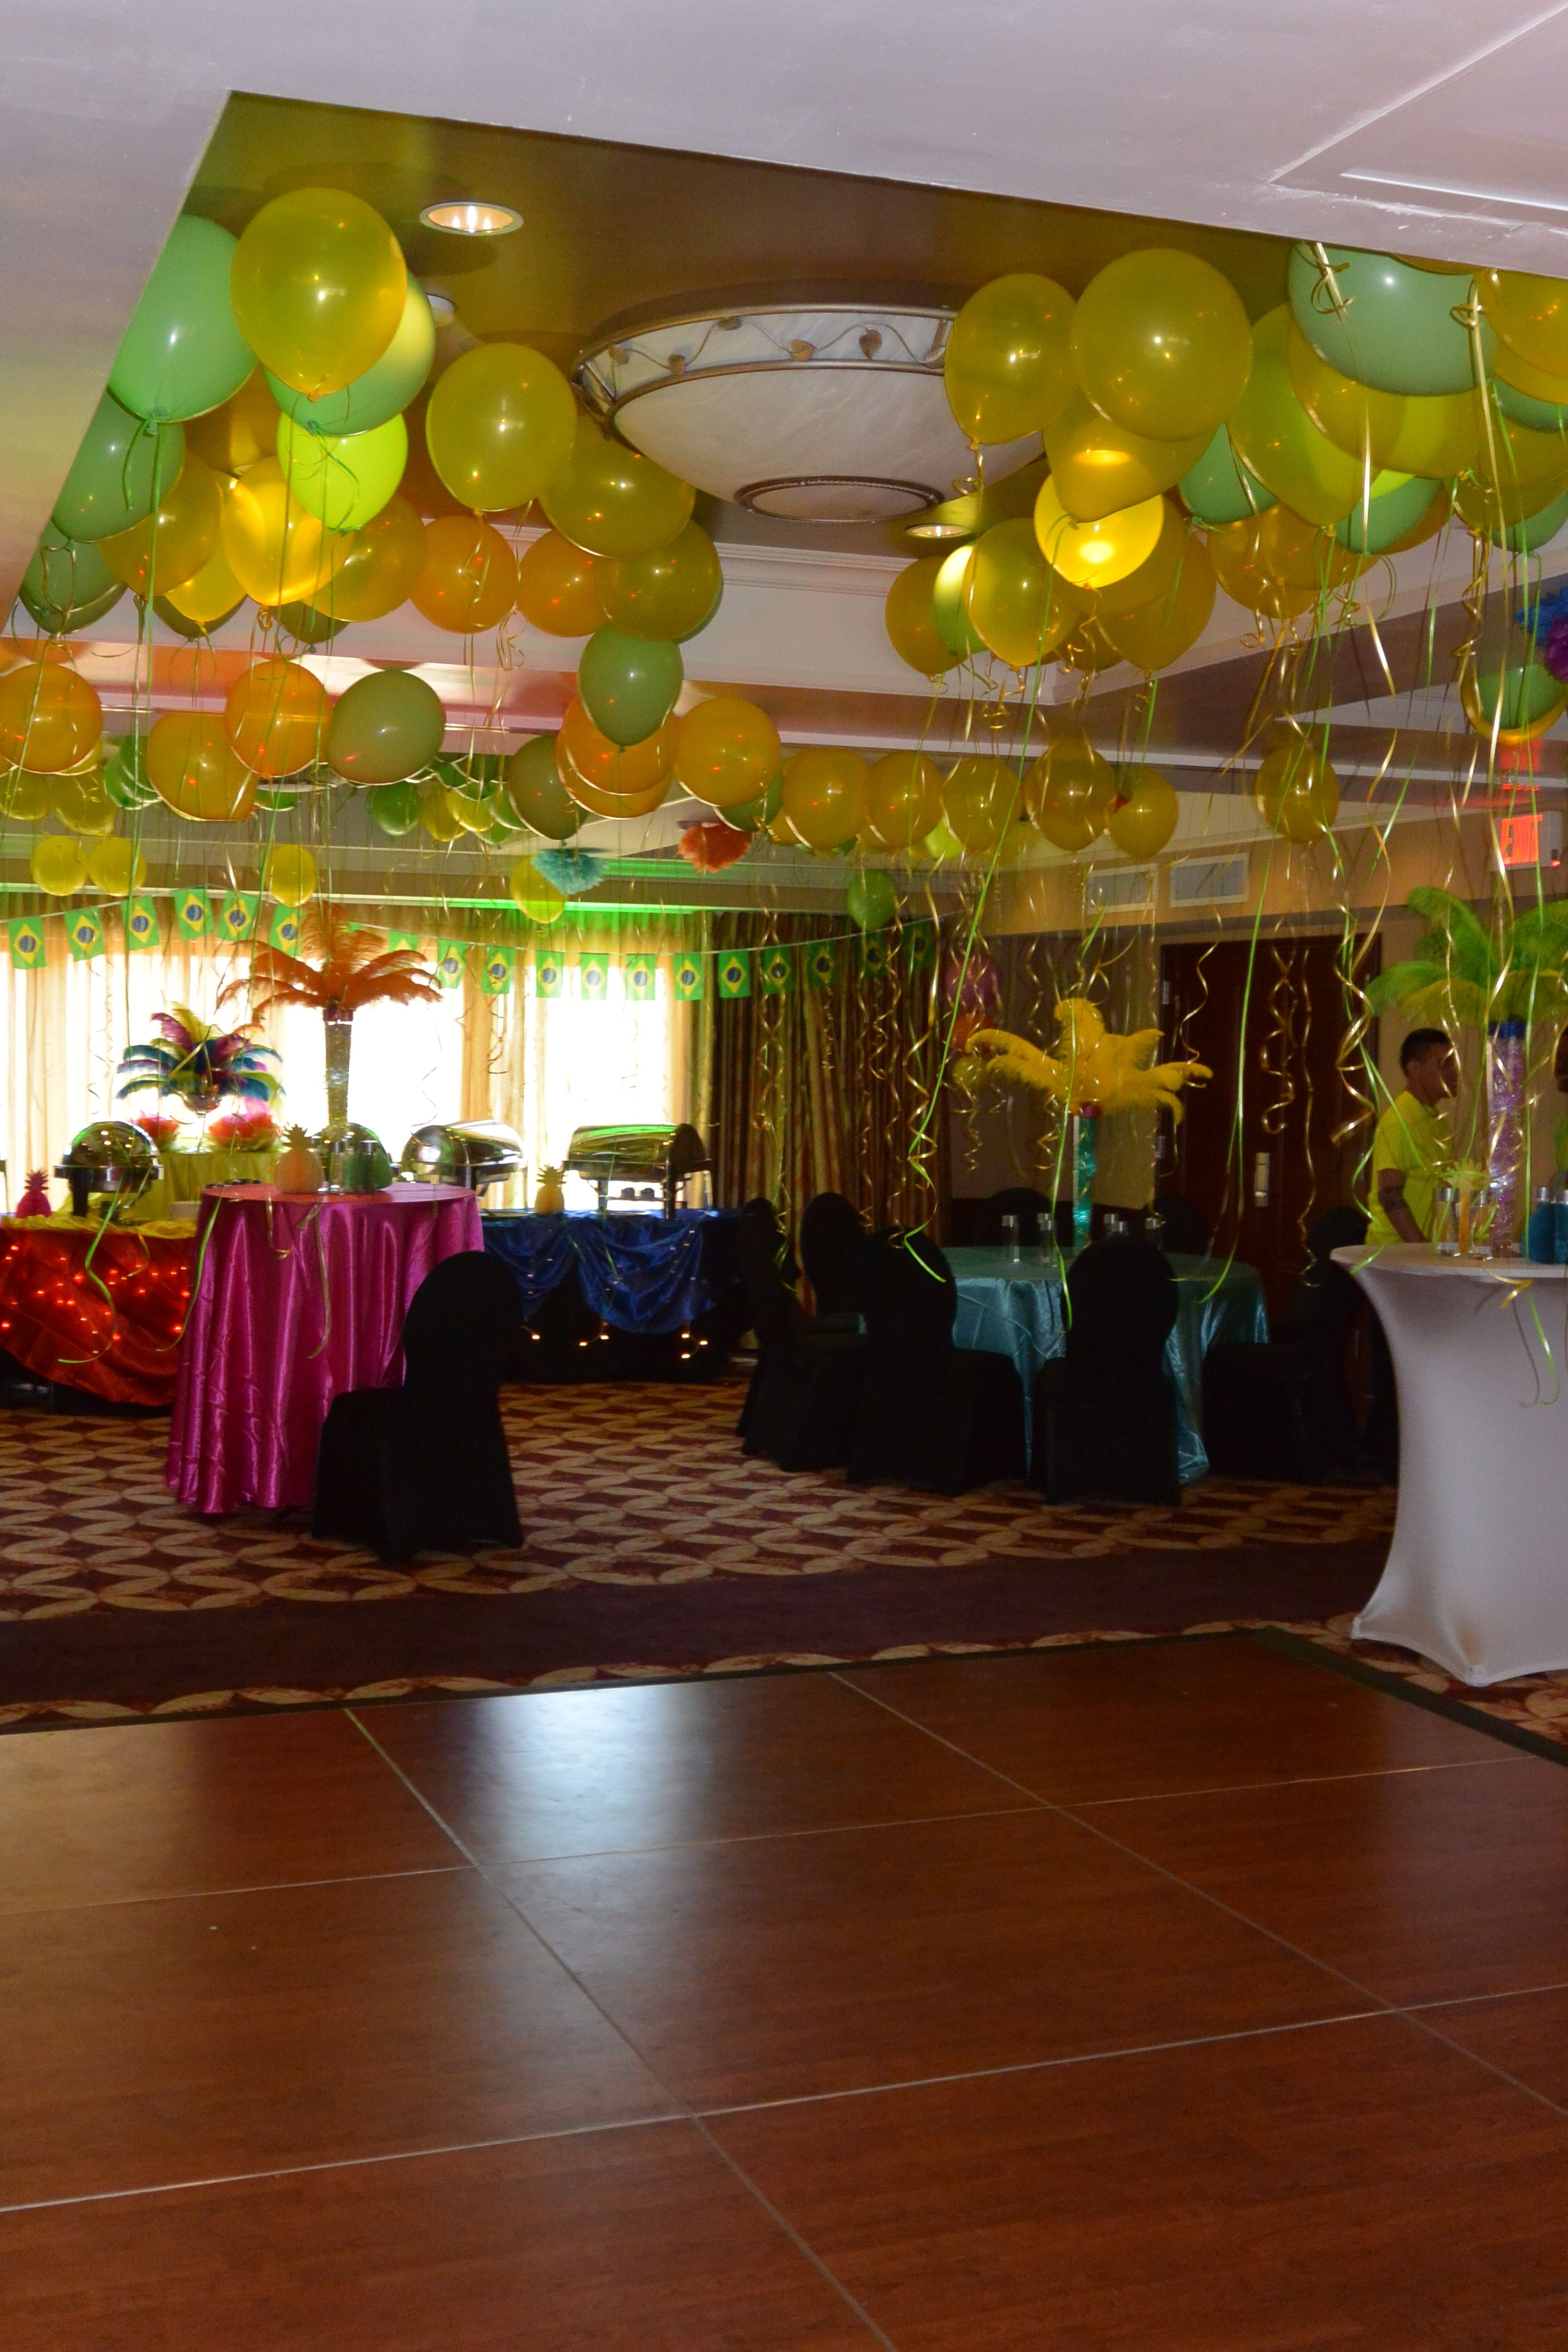 Viana hotel spa 2015 client appreciation party rio carnival theme rio carnival decorations - Carnival theme party for adults ...